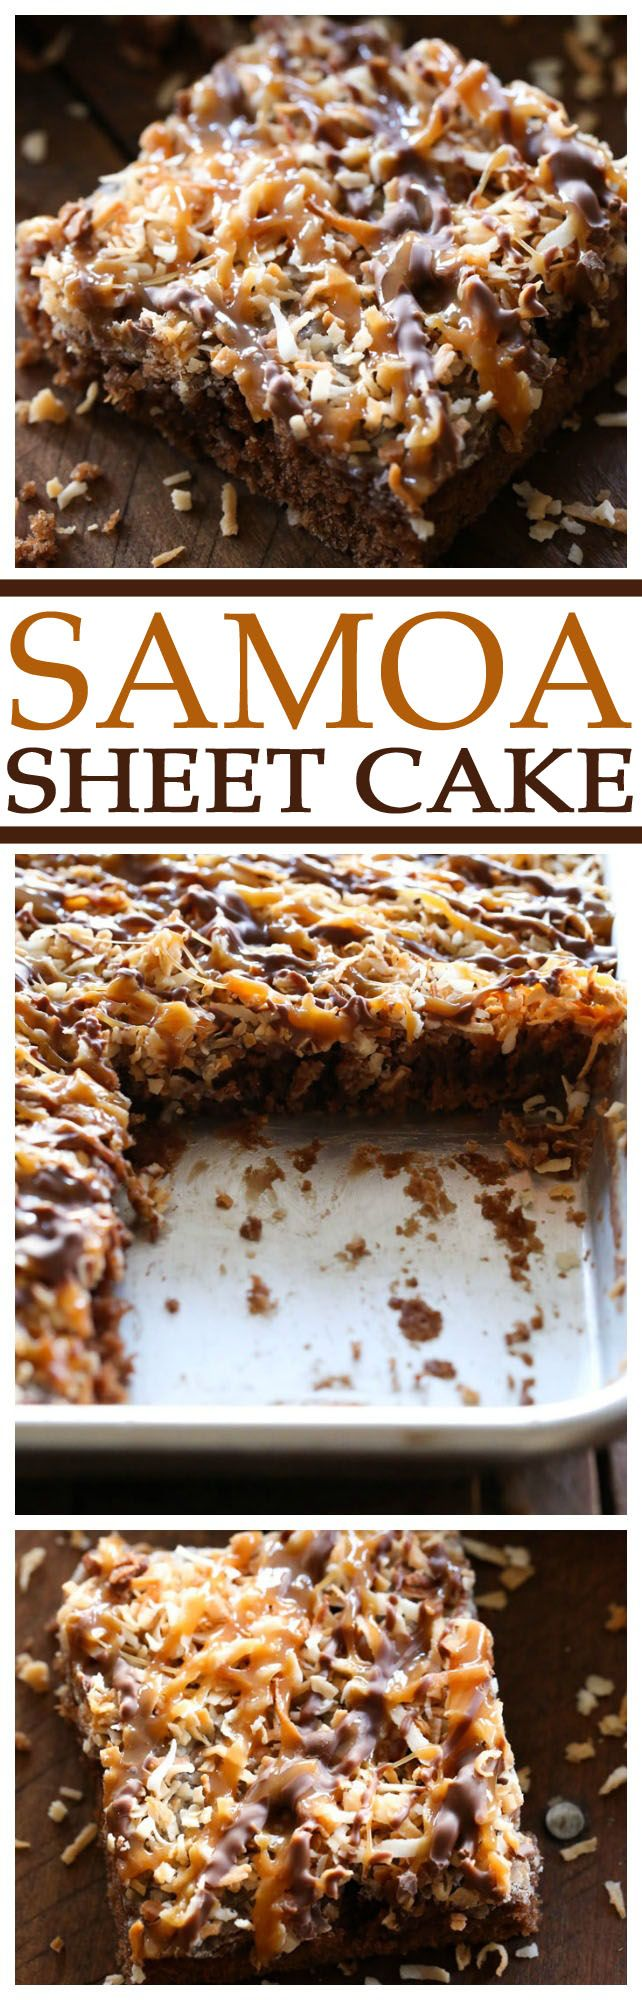 "nike womens running shoes with nike plus Samoa Sheet Cake... this has been deemed one of ""Chef in Training""'s Top 5 favorite recipes on her blog! It is one of the best desserts you will ev… 